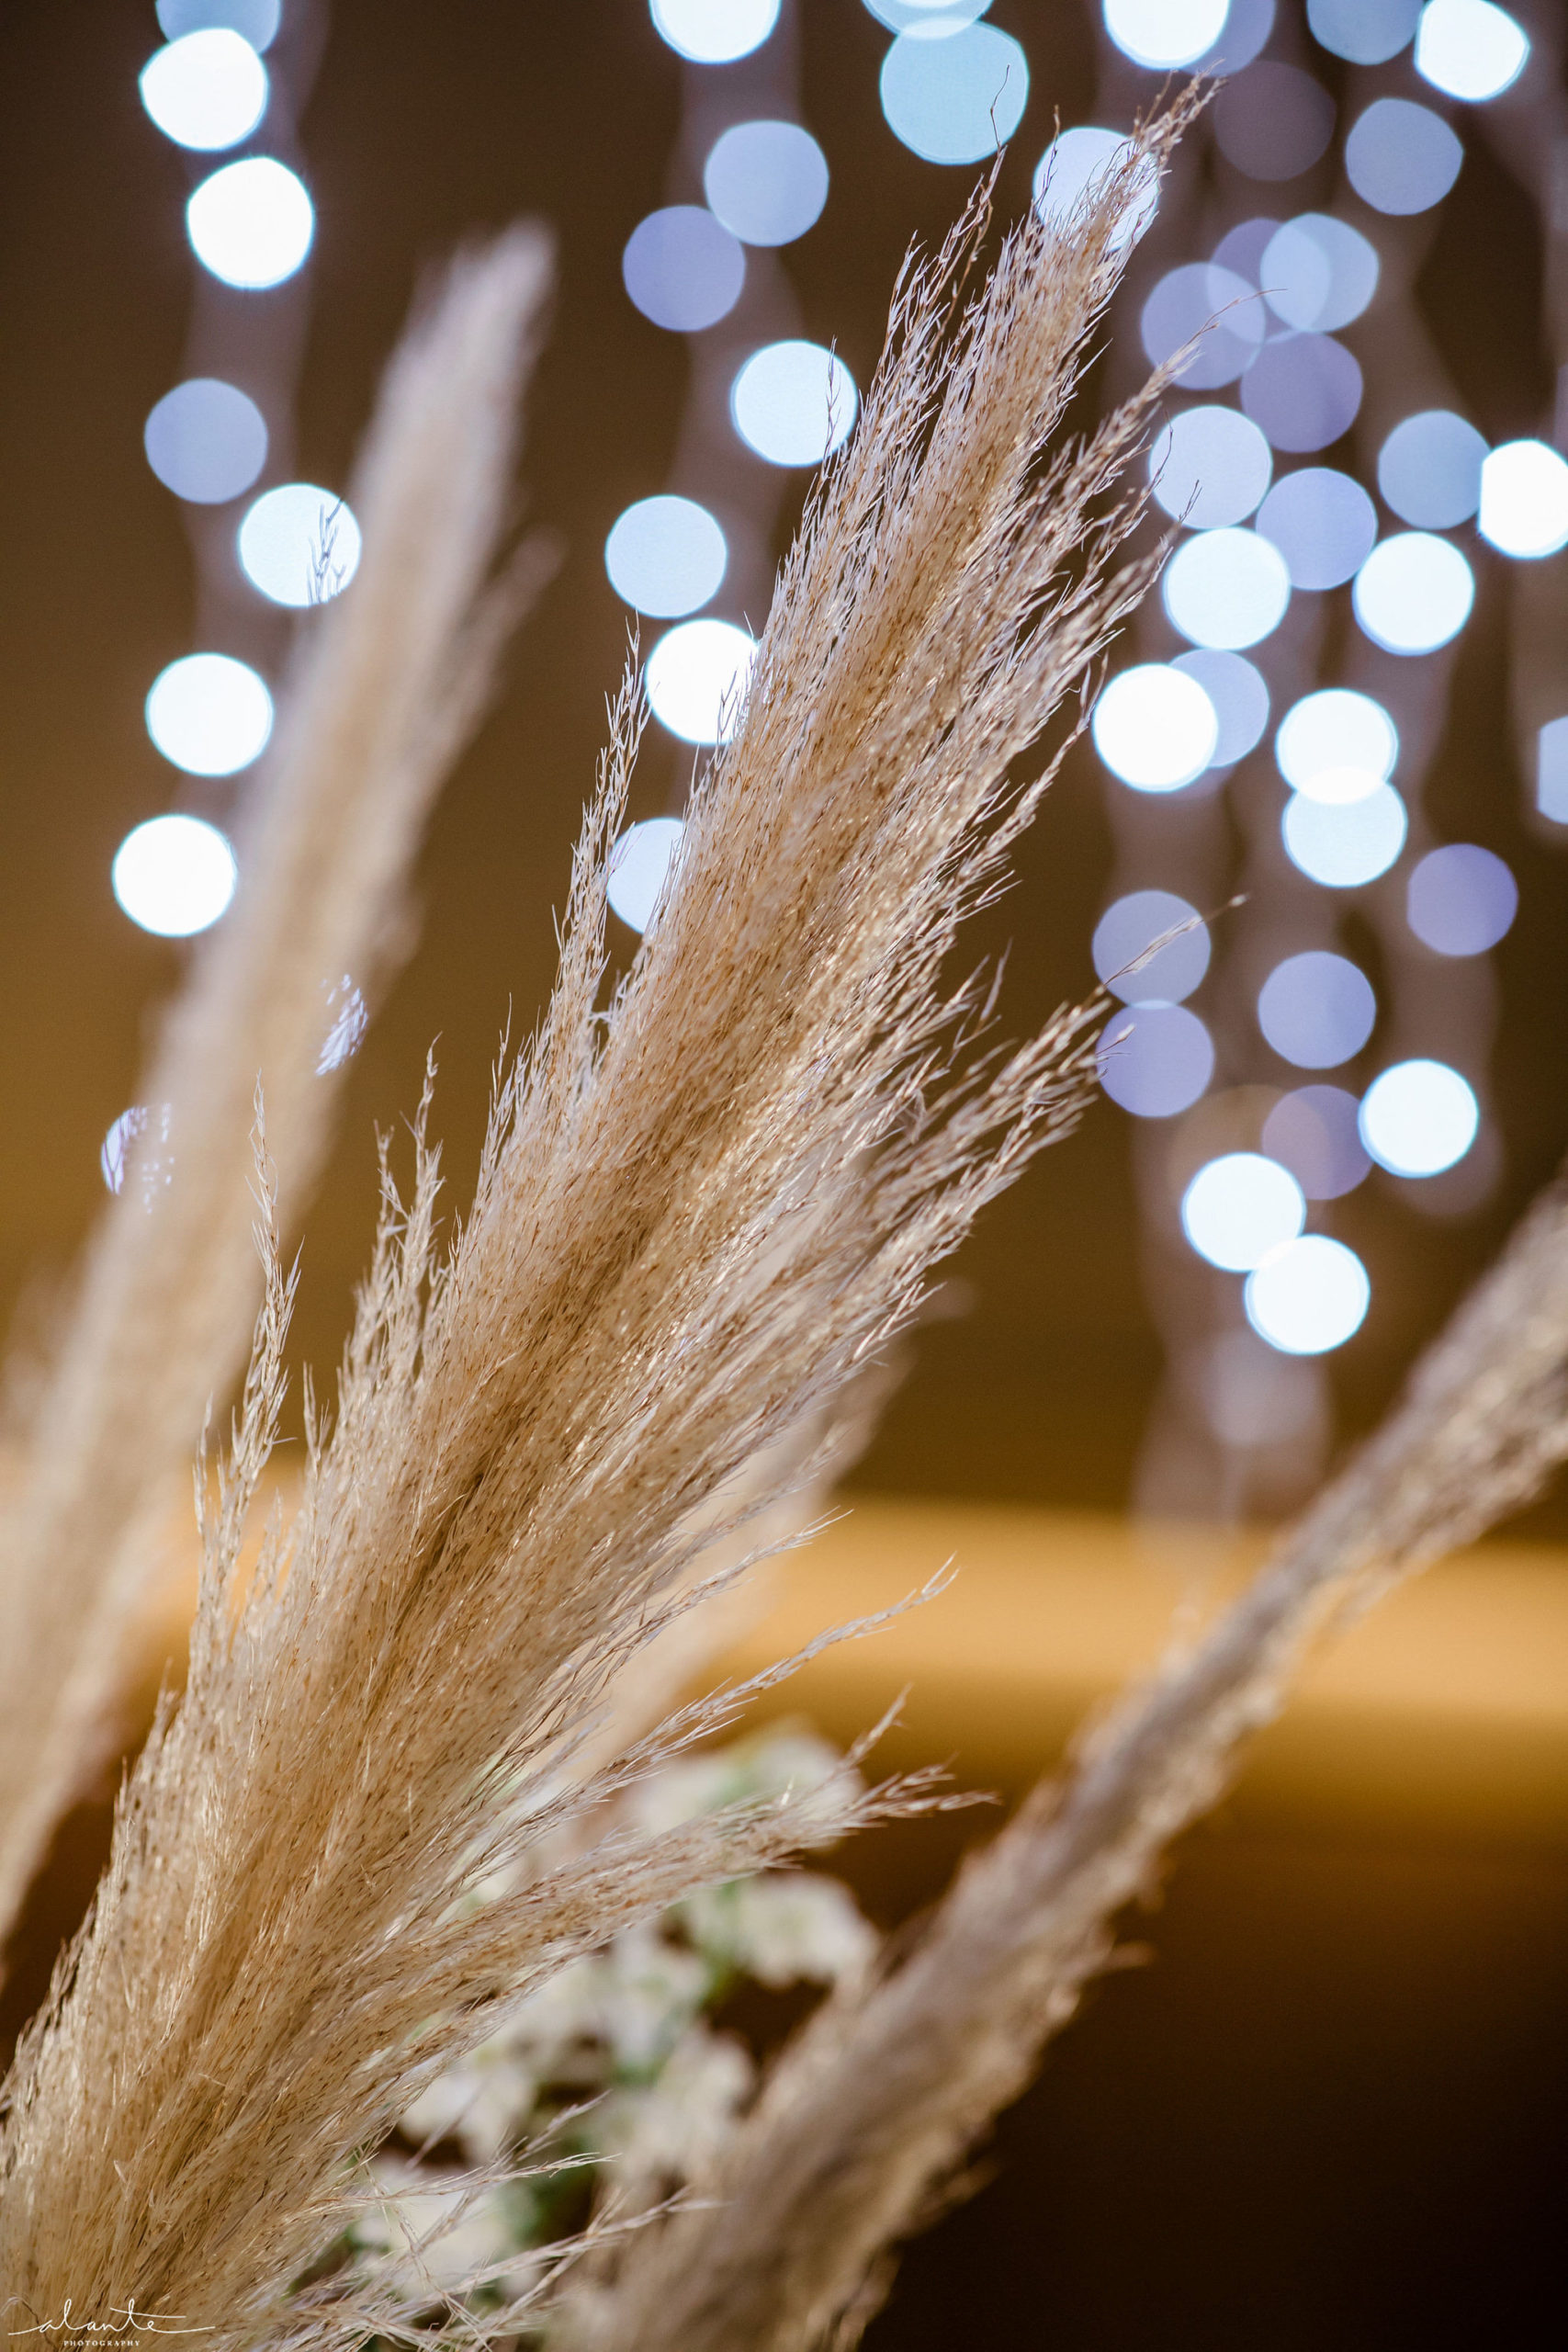 Pampas grass wedding under holiday light chandelier for a winter ceremony.